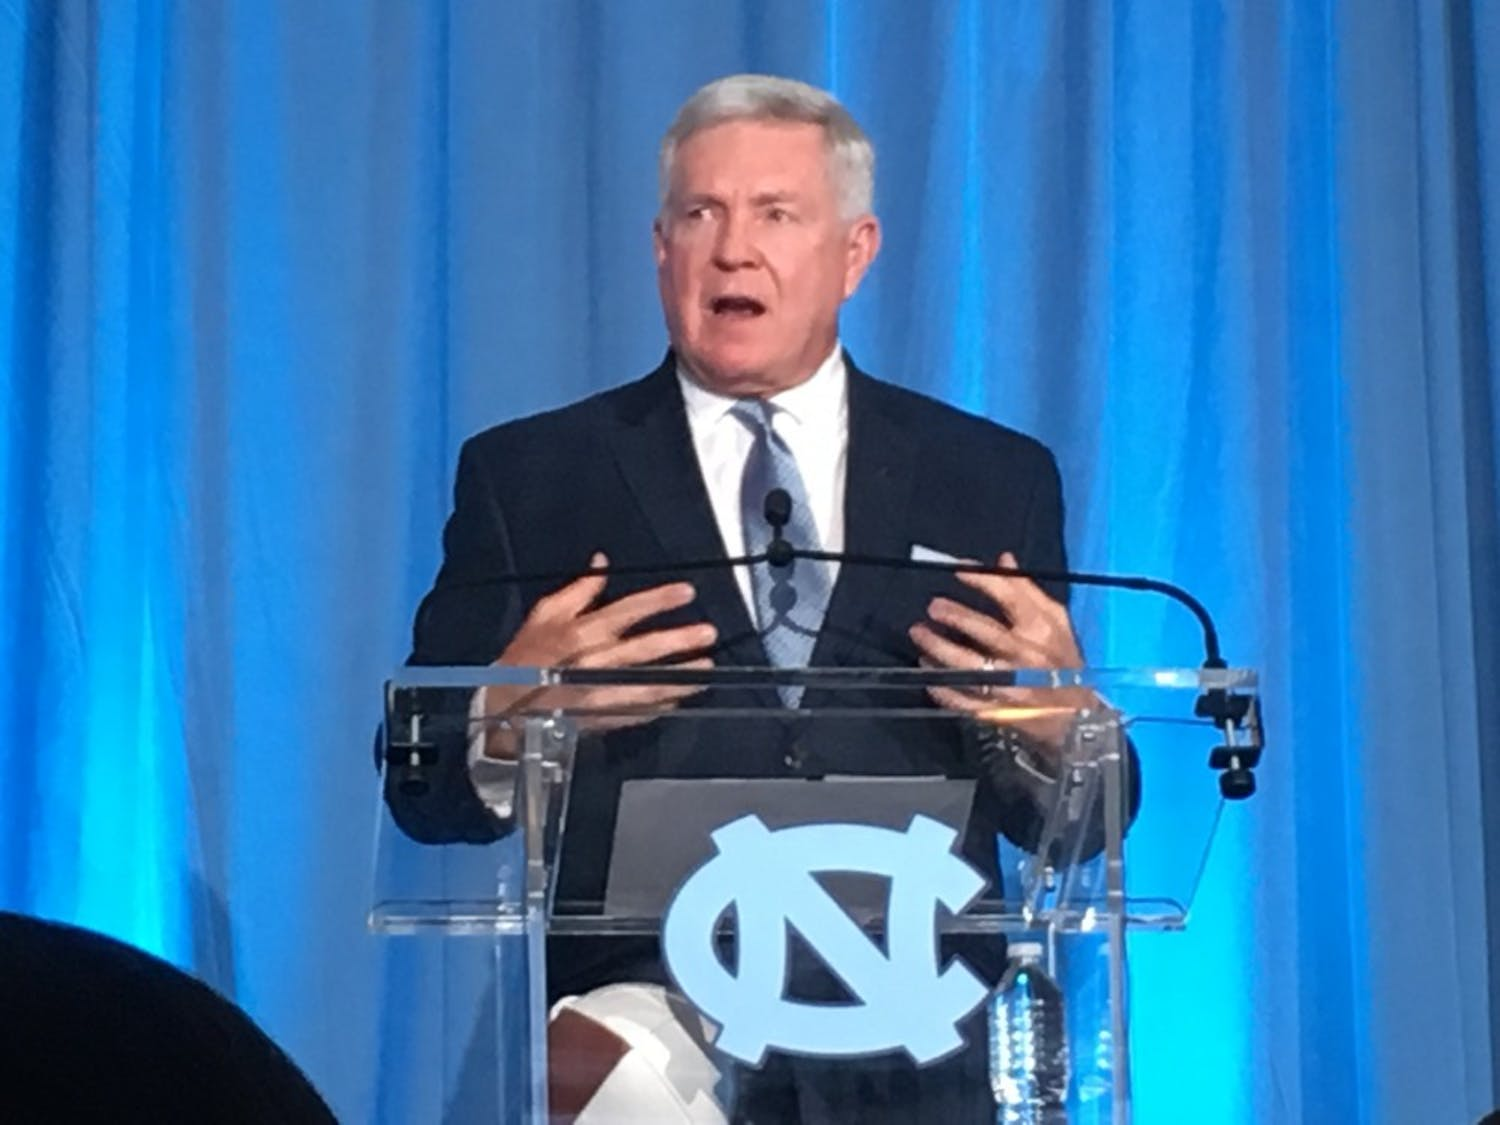 New UNC football head coach Mack Brown speaks during his introductory press conference on Nov. 27, 2018.